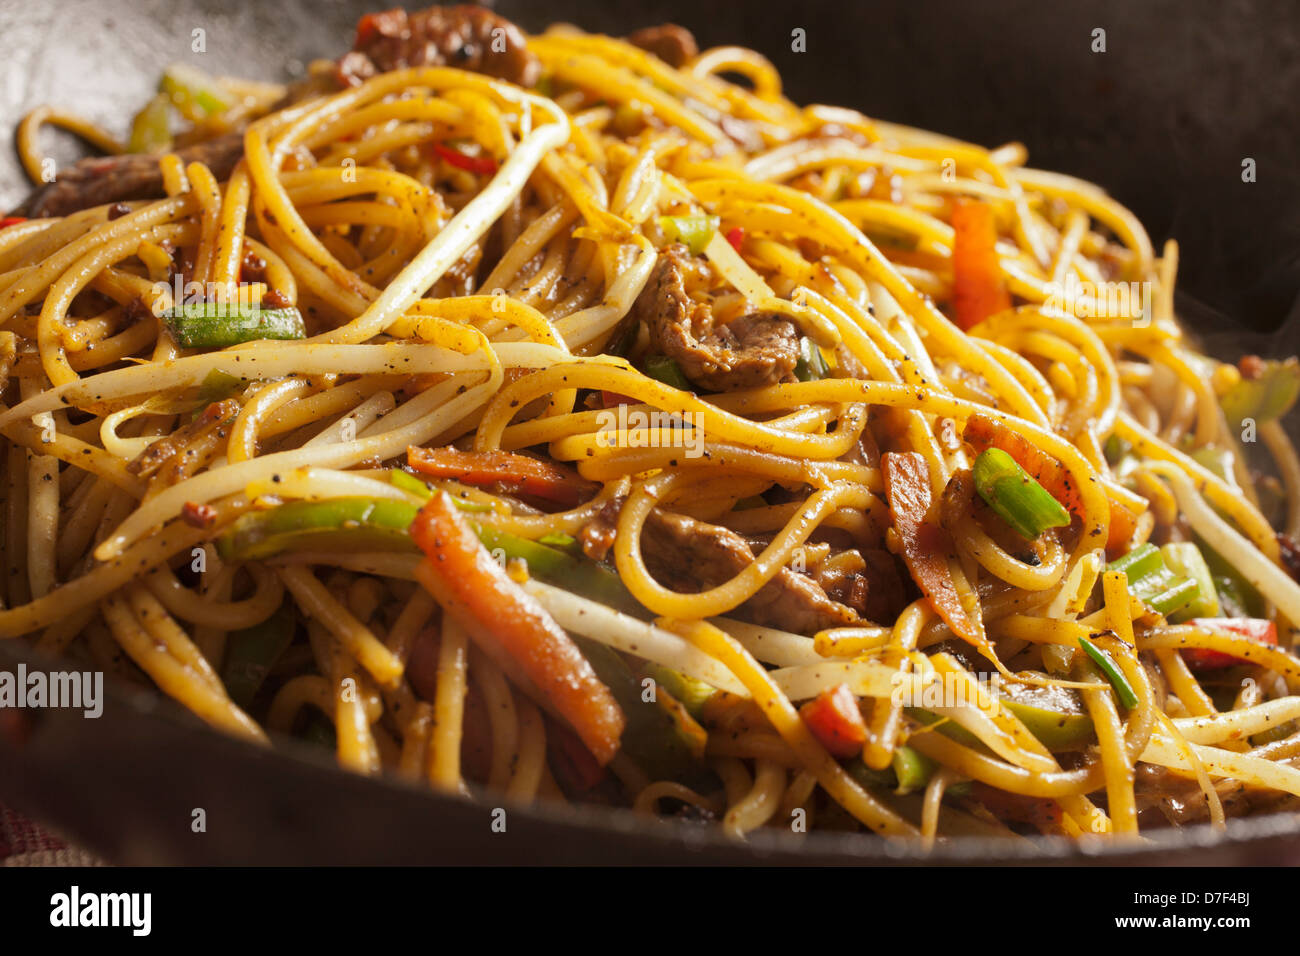 Nepali fried noodles, chow chow - Stock Image